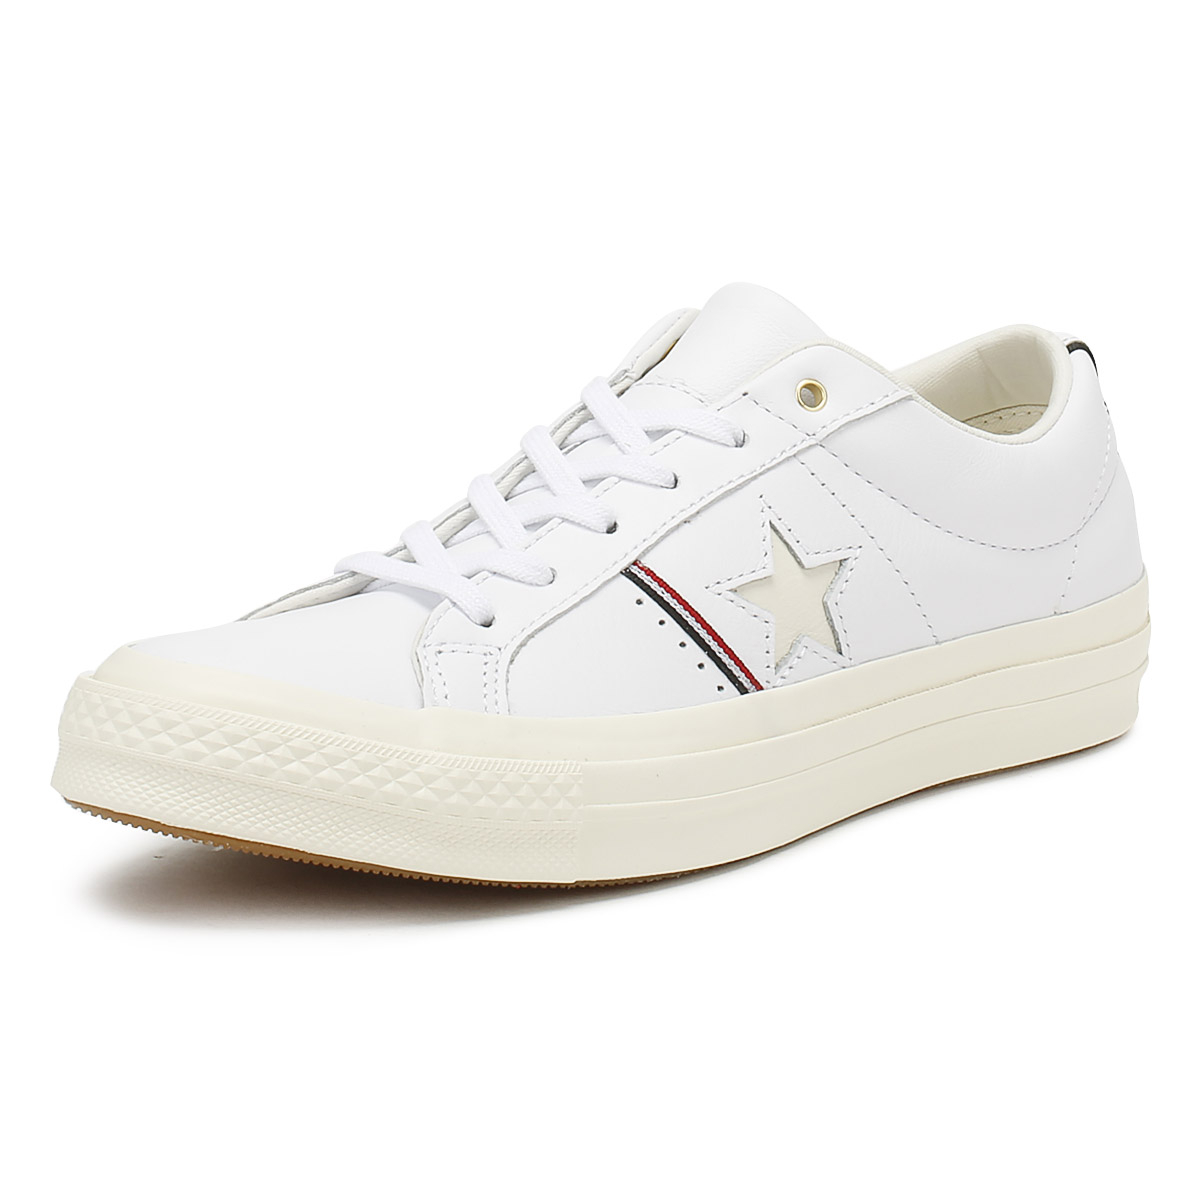 01f25ce81b3 Details about Converse One Star Womens White Ox Trainers Premium Leather  Lace Up Shoes